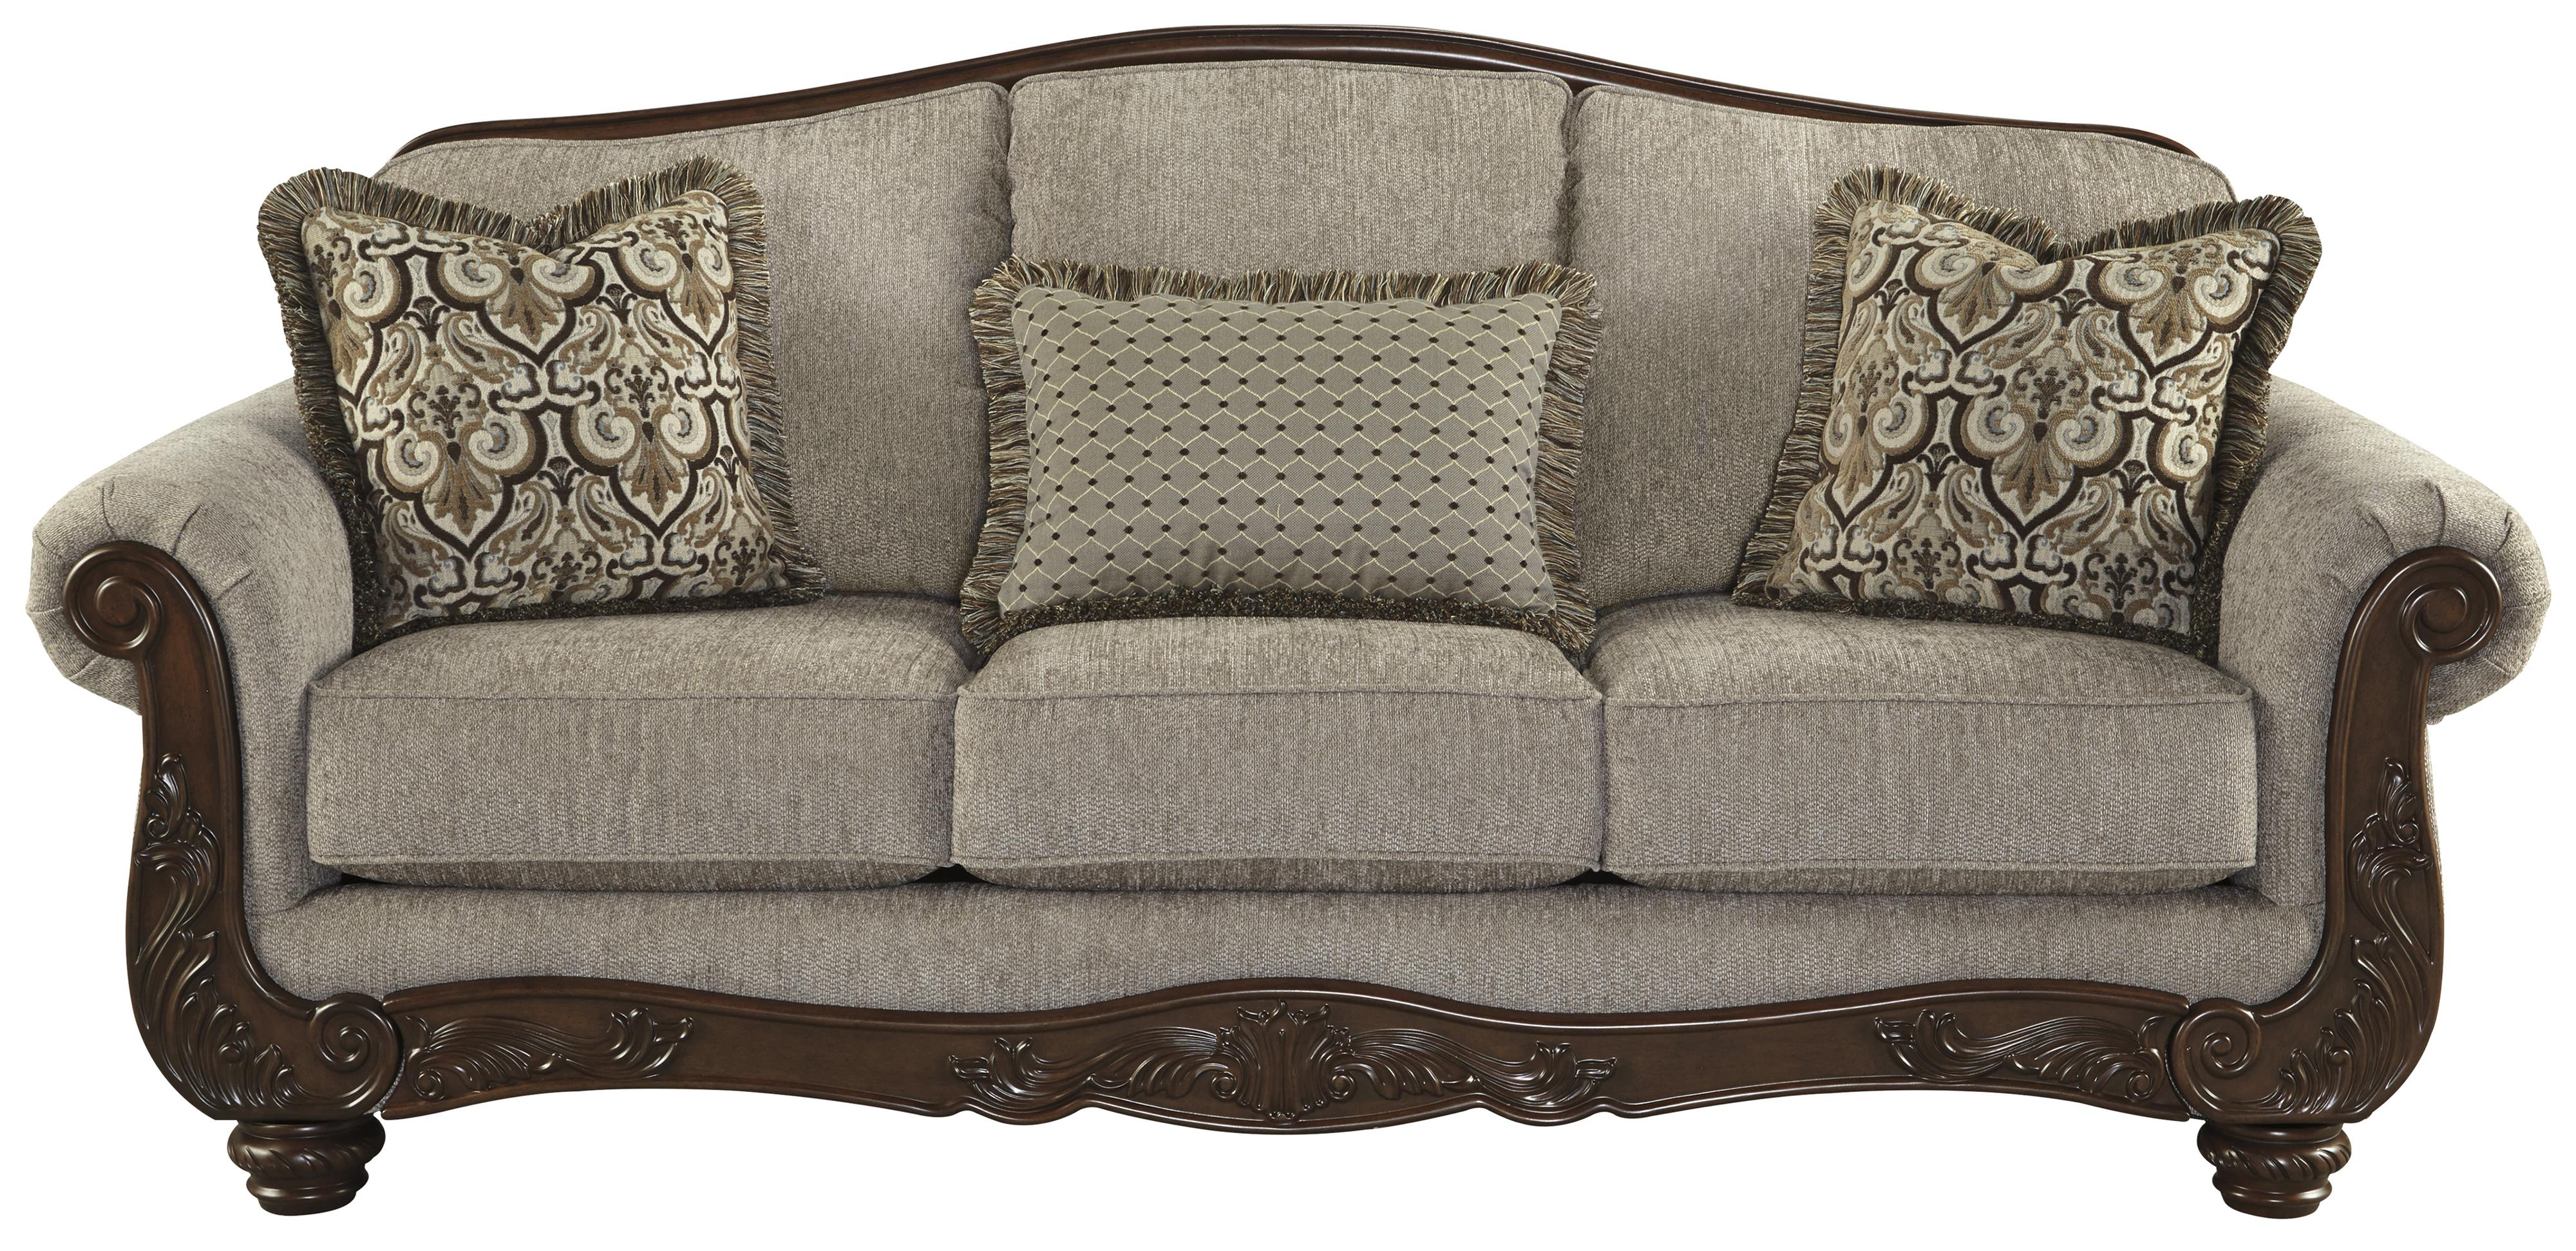 Signature design by ashley cecilyn traditional sofa with for Traditional sofas and loveseats